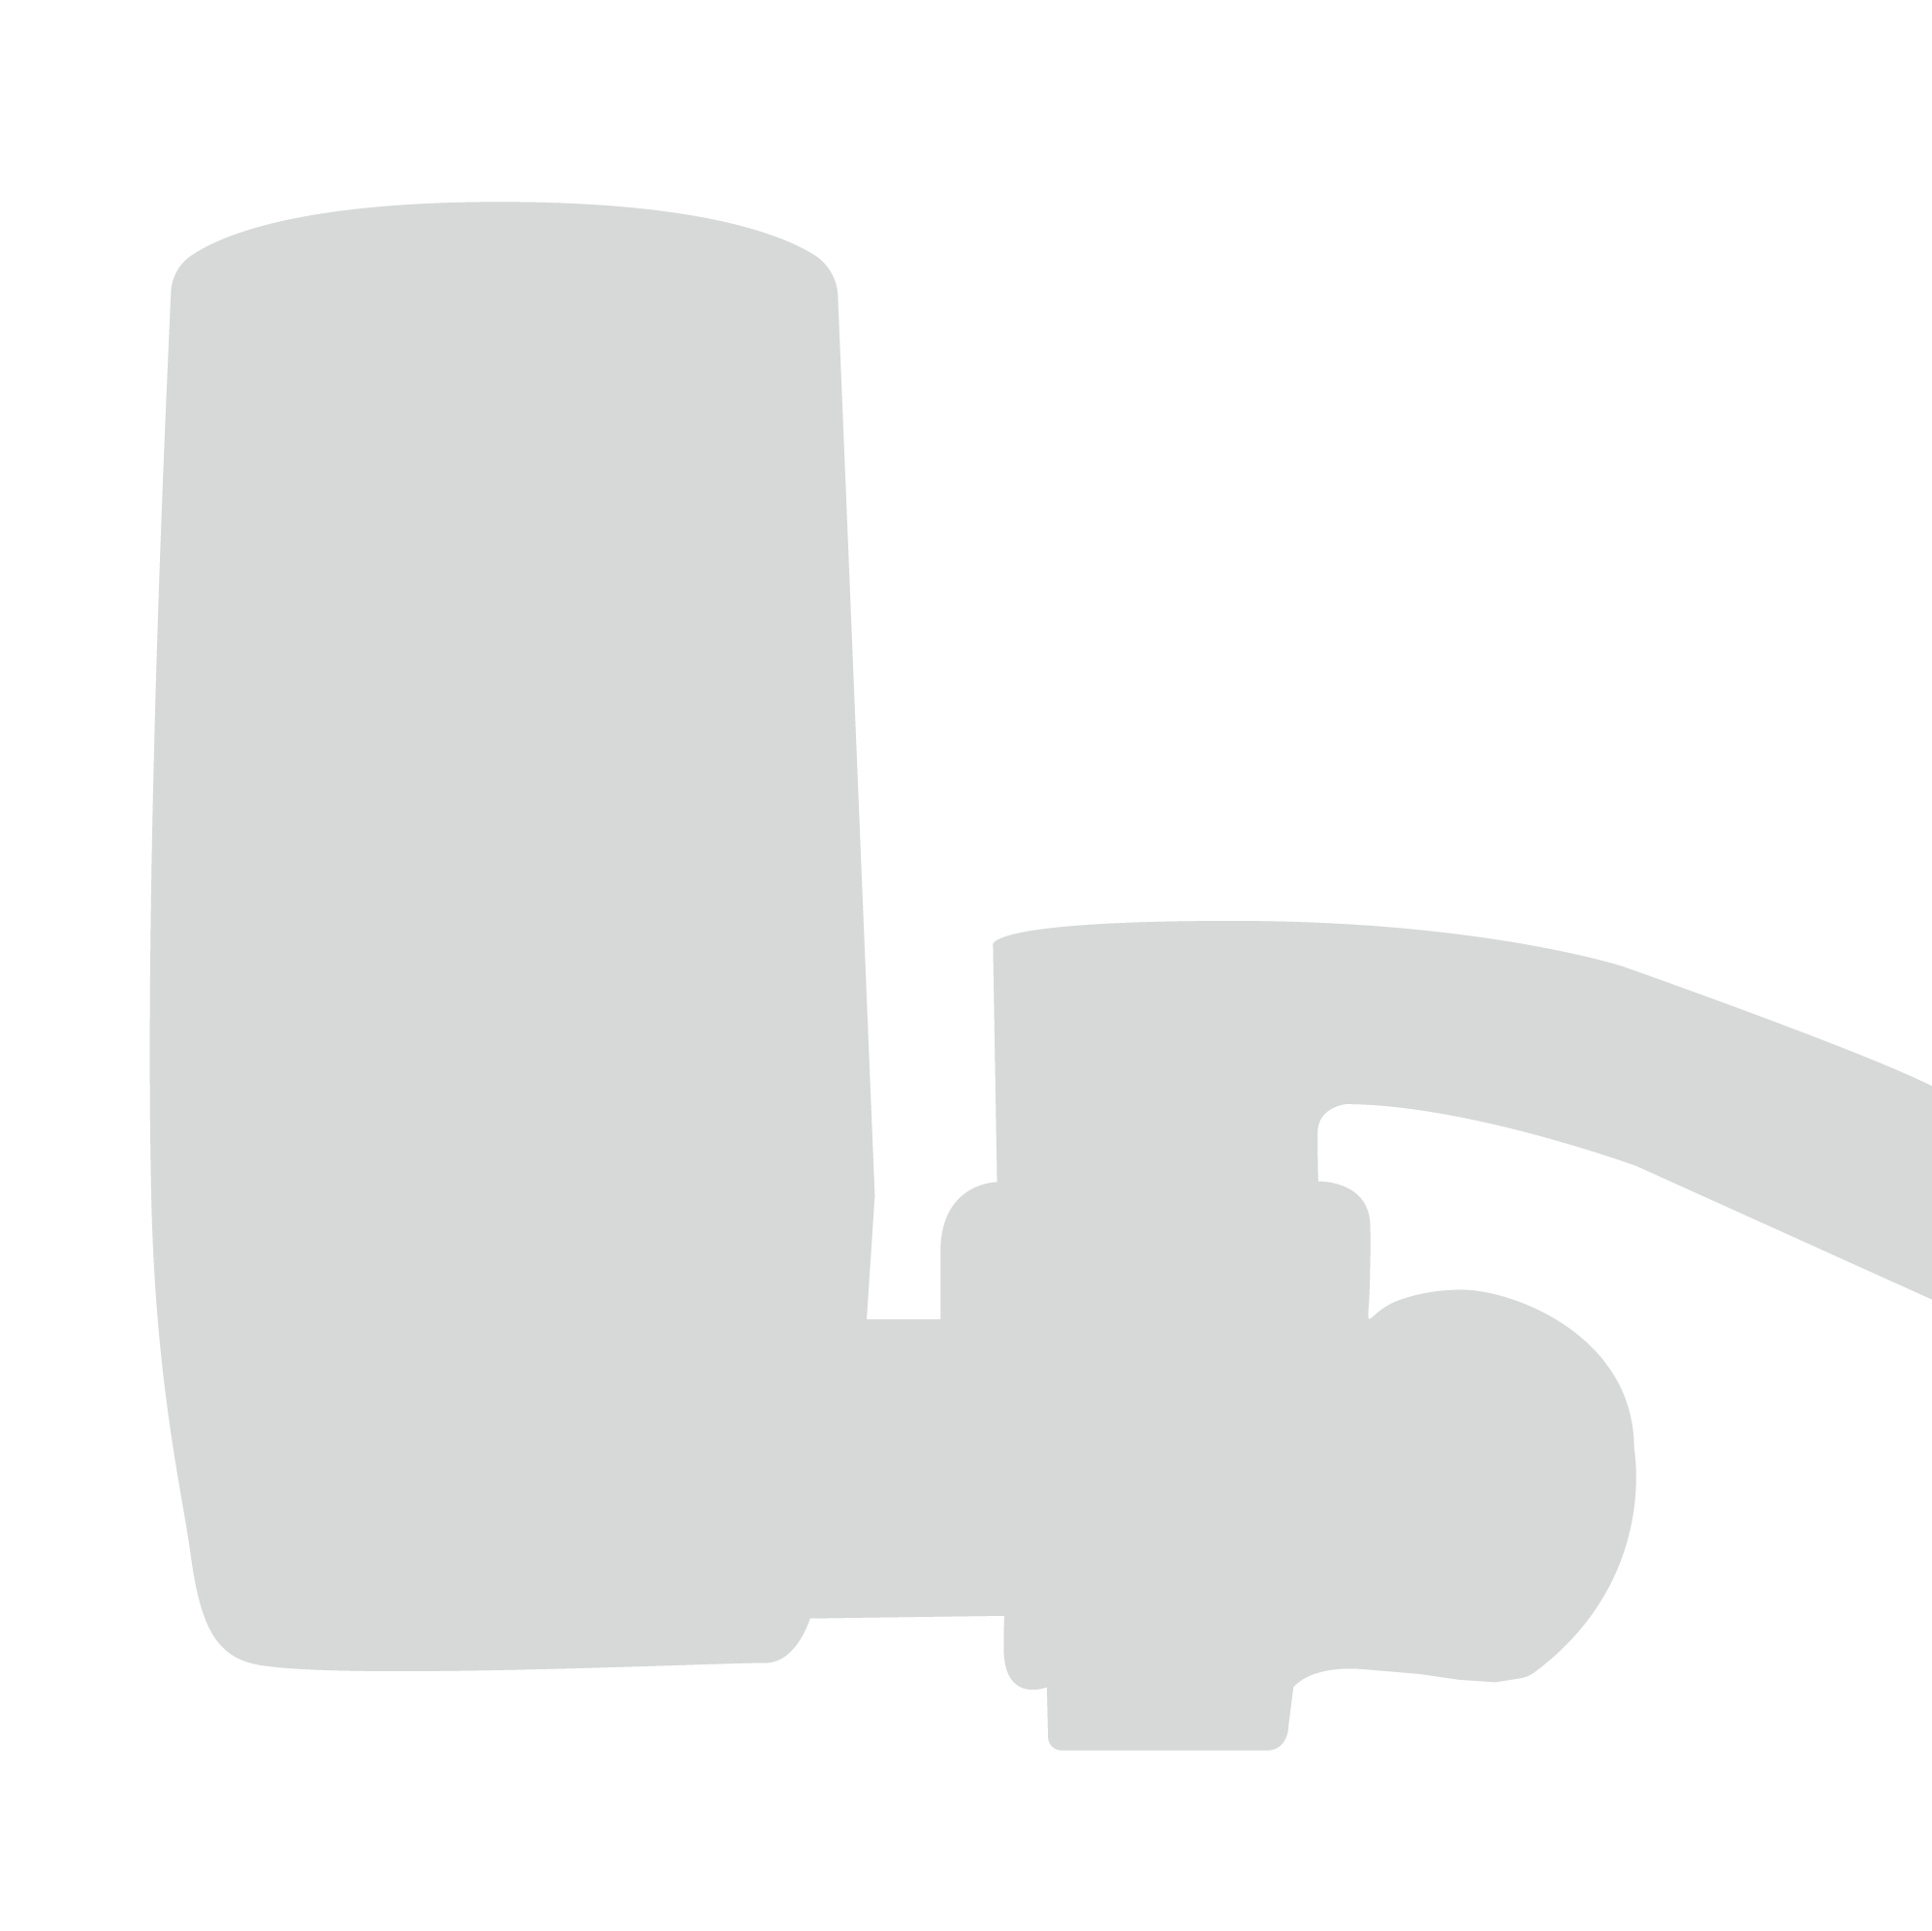 Faucet clipart water treatment. Ewg tap database filters